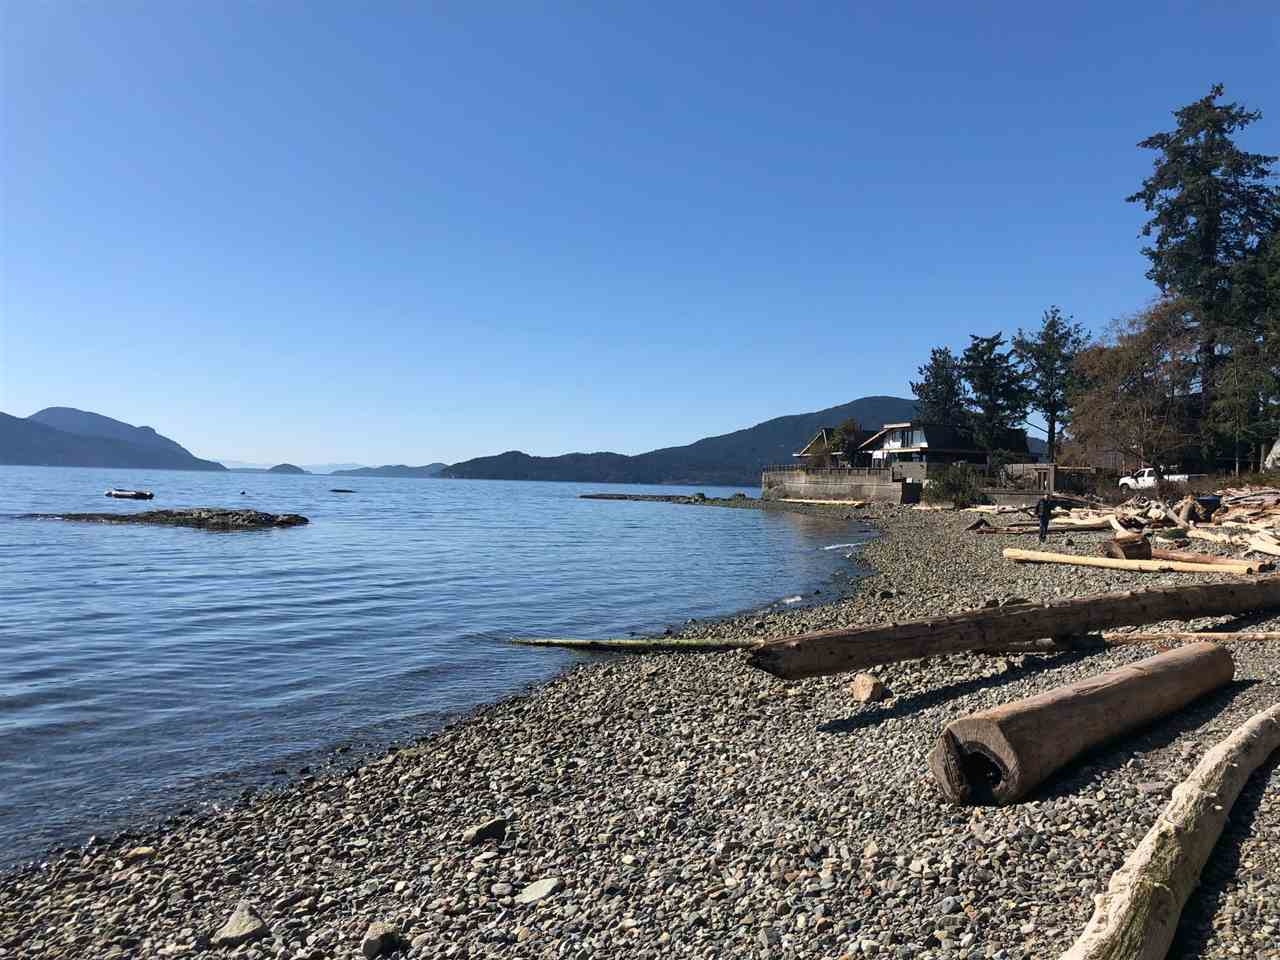 Amazing and rare opportunity to build your dream home on a south facing, semi-water front property in the cottage-like community of Brunswick Beach. Gorgeous island and ocean views. Large, level lot and level beach front in the calm and sheltered Alberta Bay, making this one of the best Brunswick Beach lots and locations. Enjoy kayaking, beach-coming, swimming, fishing and boating only a few steps out your front door! A perfect getaway, only 25 minutes to downtown Vancouver. Or better yet, live here year round and be only 60 minutes from Whistler too. No sign on property. Land value - dwelling as is. Please do not disturb tenants or walk the property without permission, thank you.